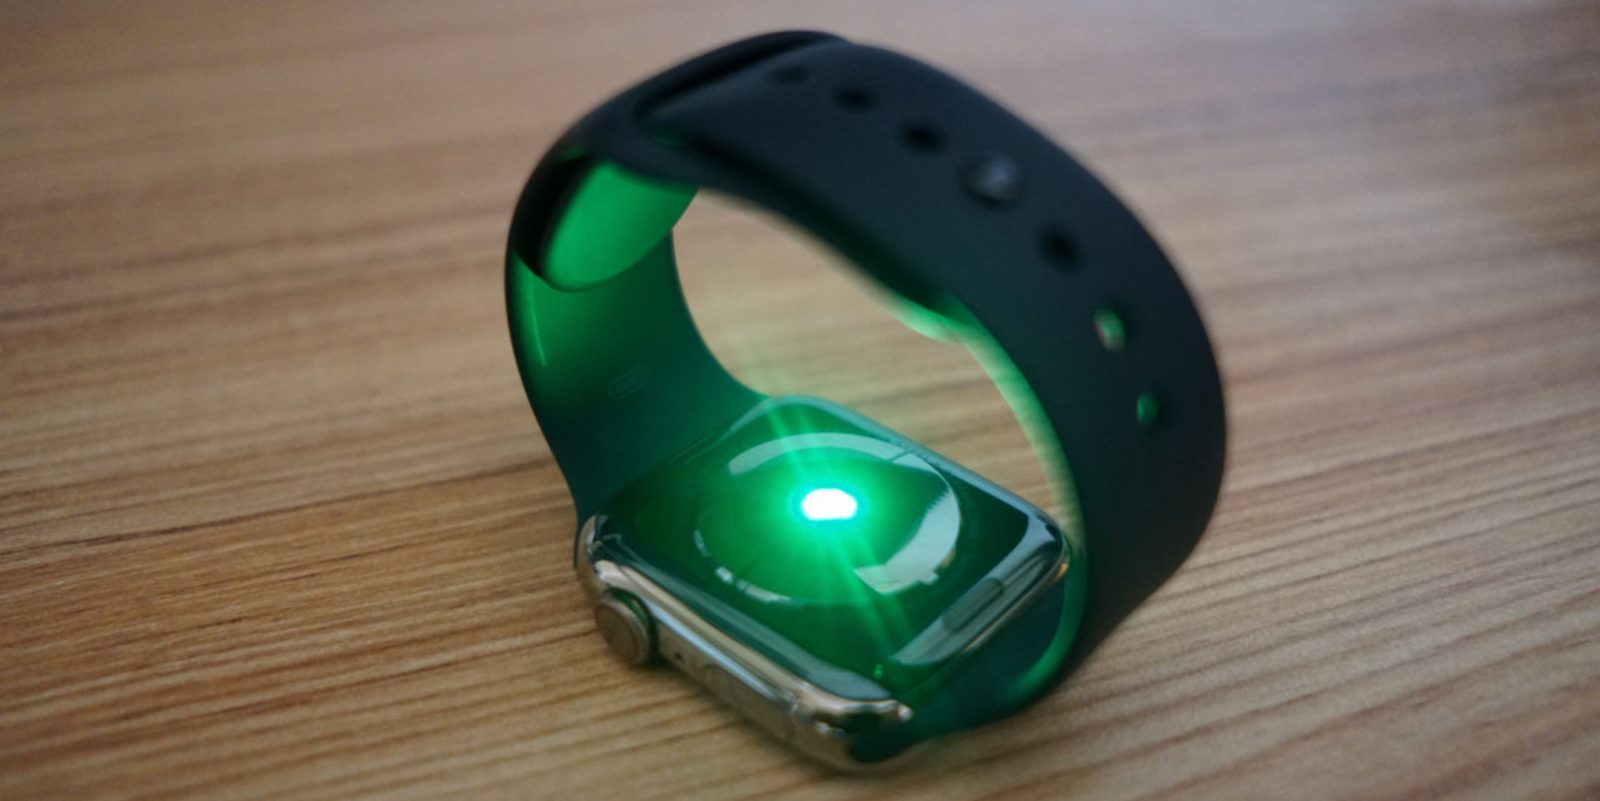 photo of Report claims Huawei tried to copy Apple Watch heart rate sensor by asking Apple supplier to share its secrets image